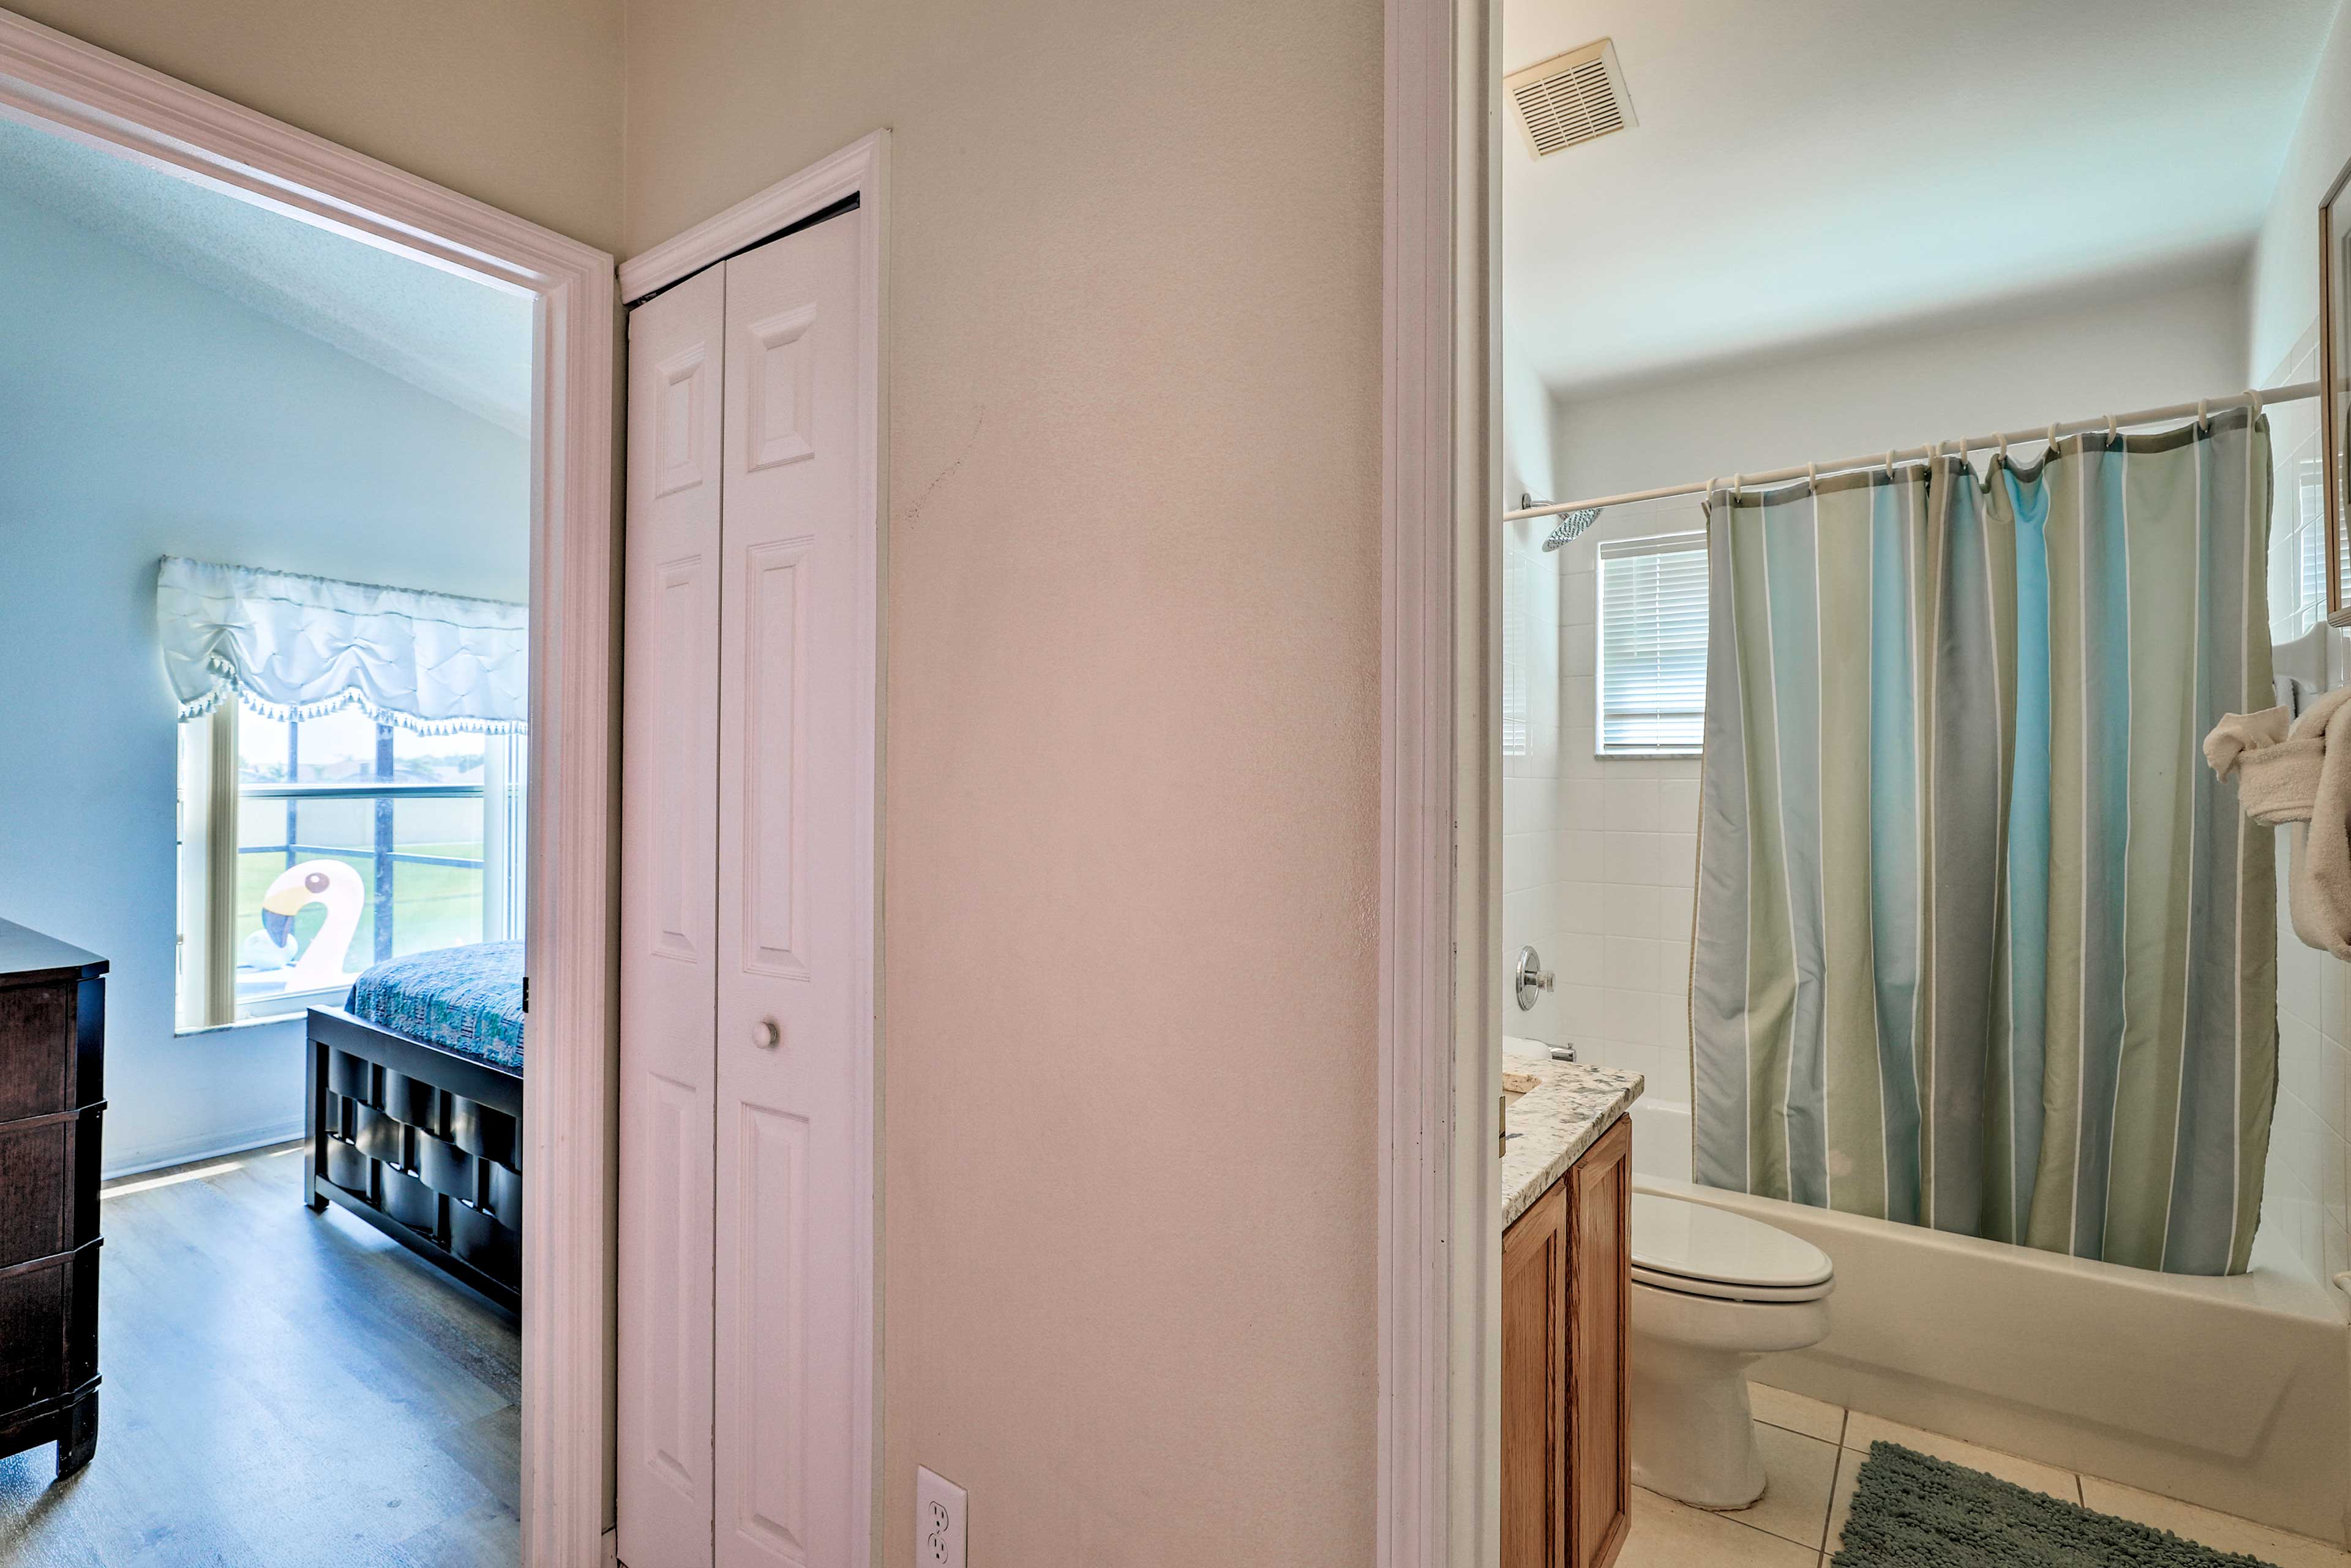 The bathroom is conveniently located right next to bedroom 3.